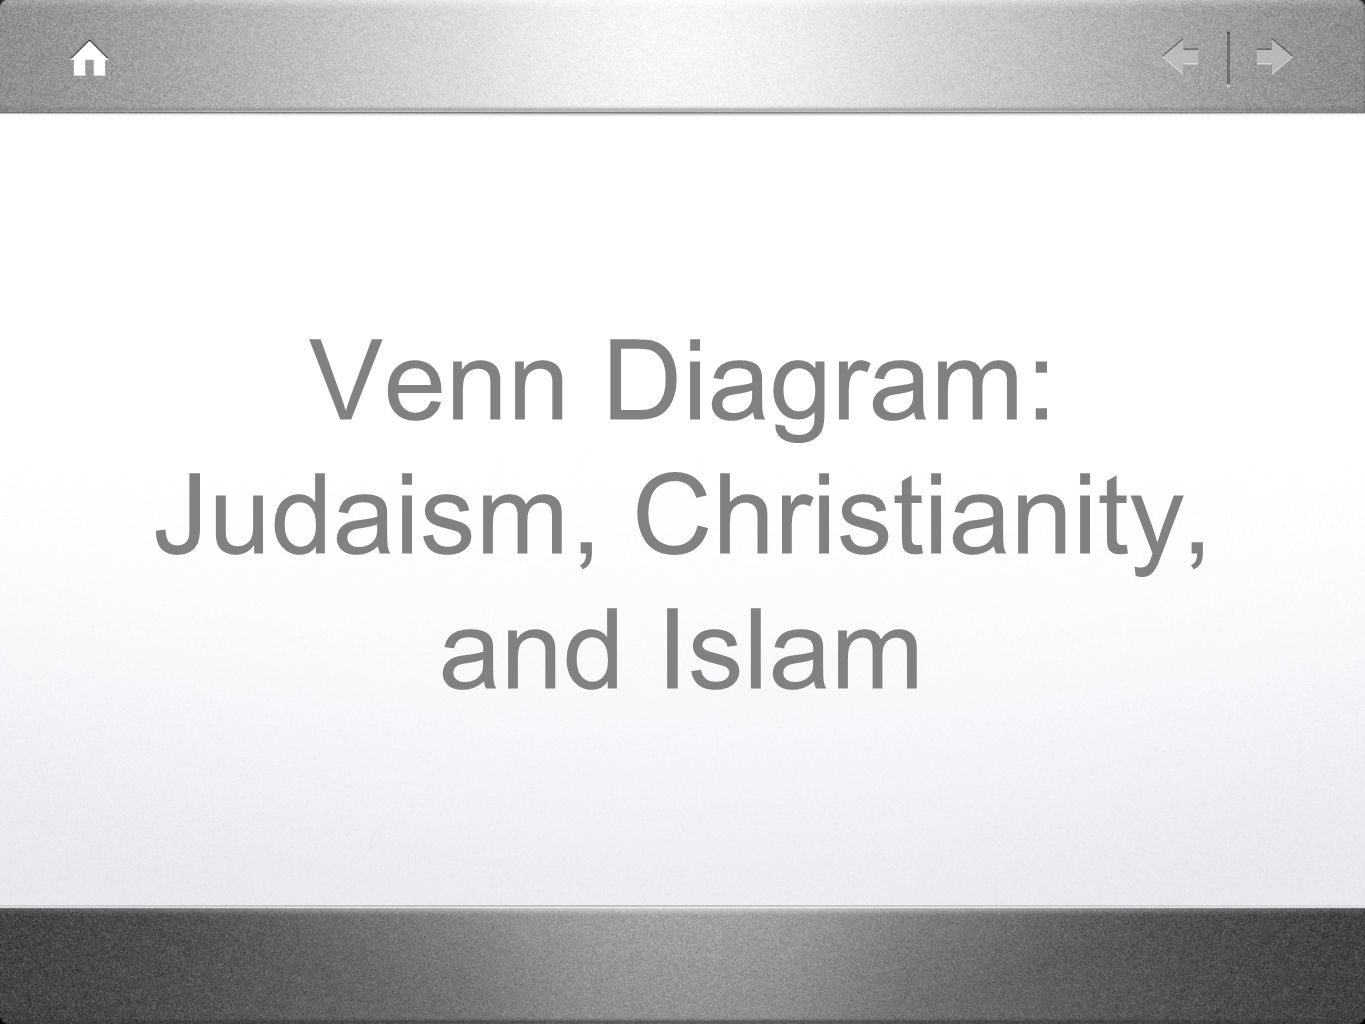 1 venn diagram judaism christianity and islam